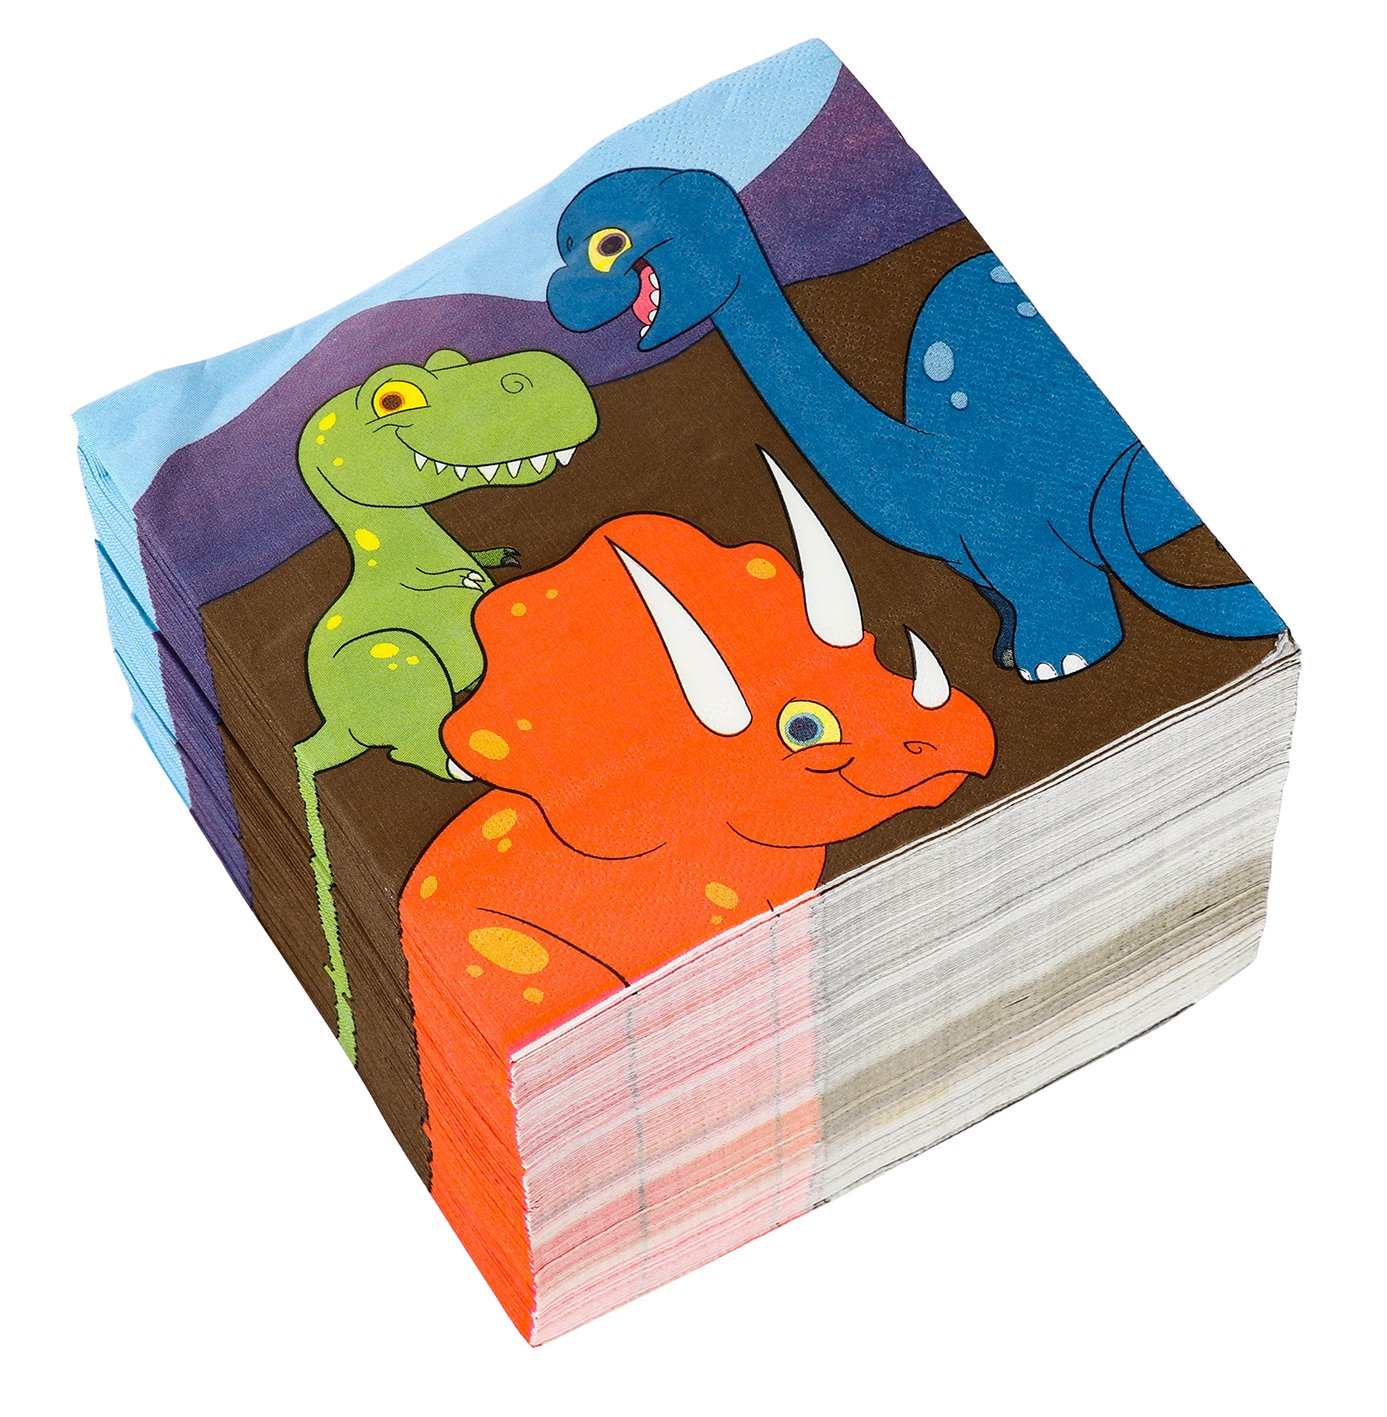 Cocktail Napkins - 150-Pack Luncheon Napkins, Disposable Paper Napkins Kids Birthday Party Supplies, 3-Ply, Dinosaur Design, Unfolded 13 x 13 Inches, Folded 6.5 x 6.5 Inches